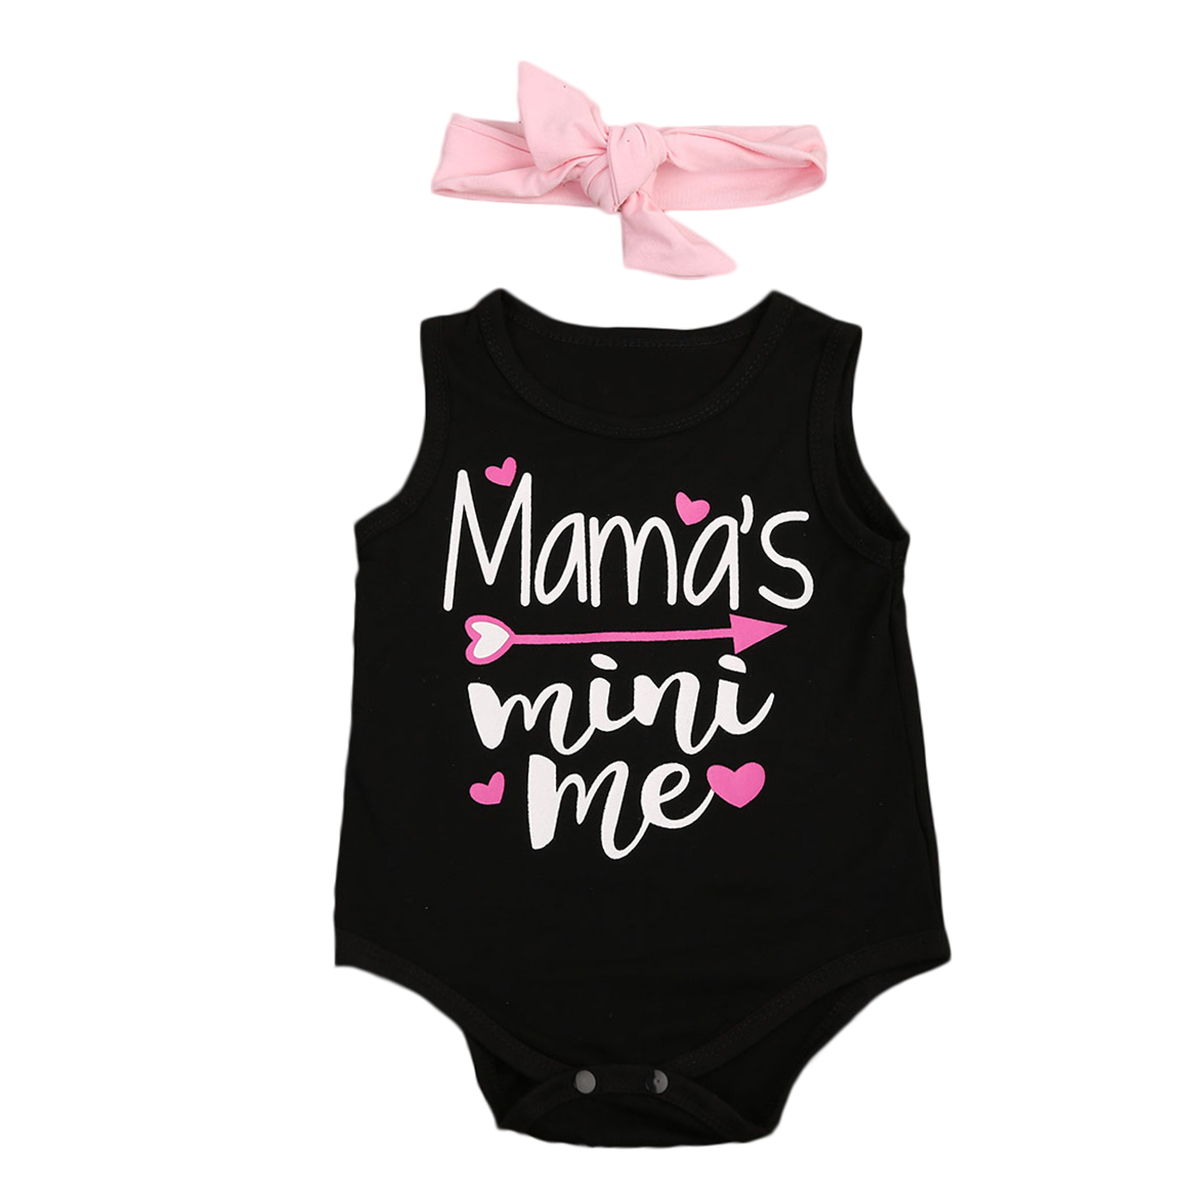 Mamas Mini Me Print Sleeveless Bodysuit With Headband For Baby Girl